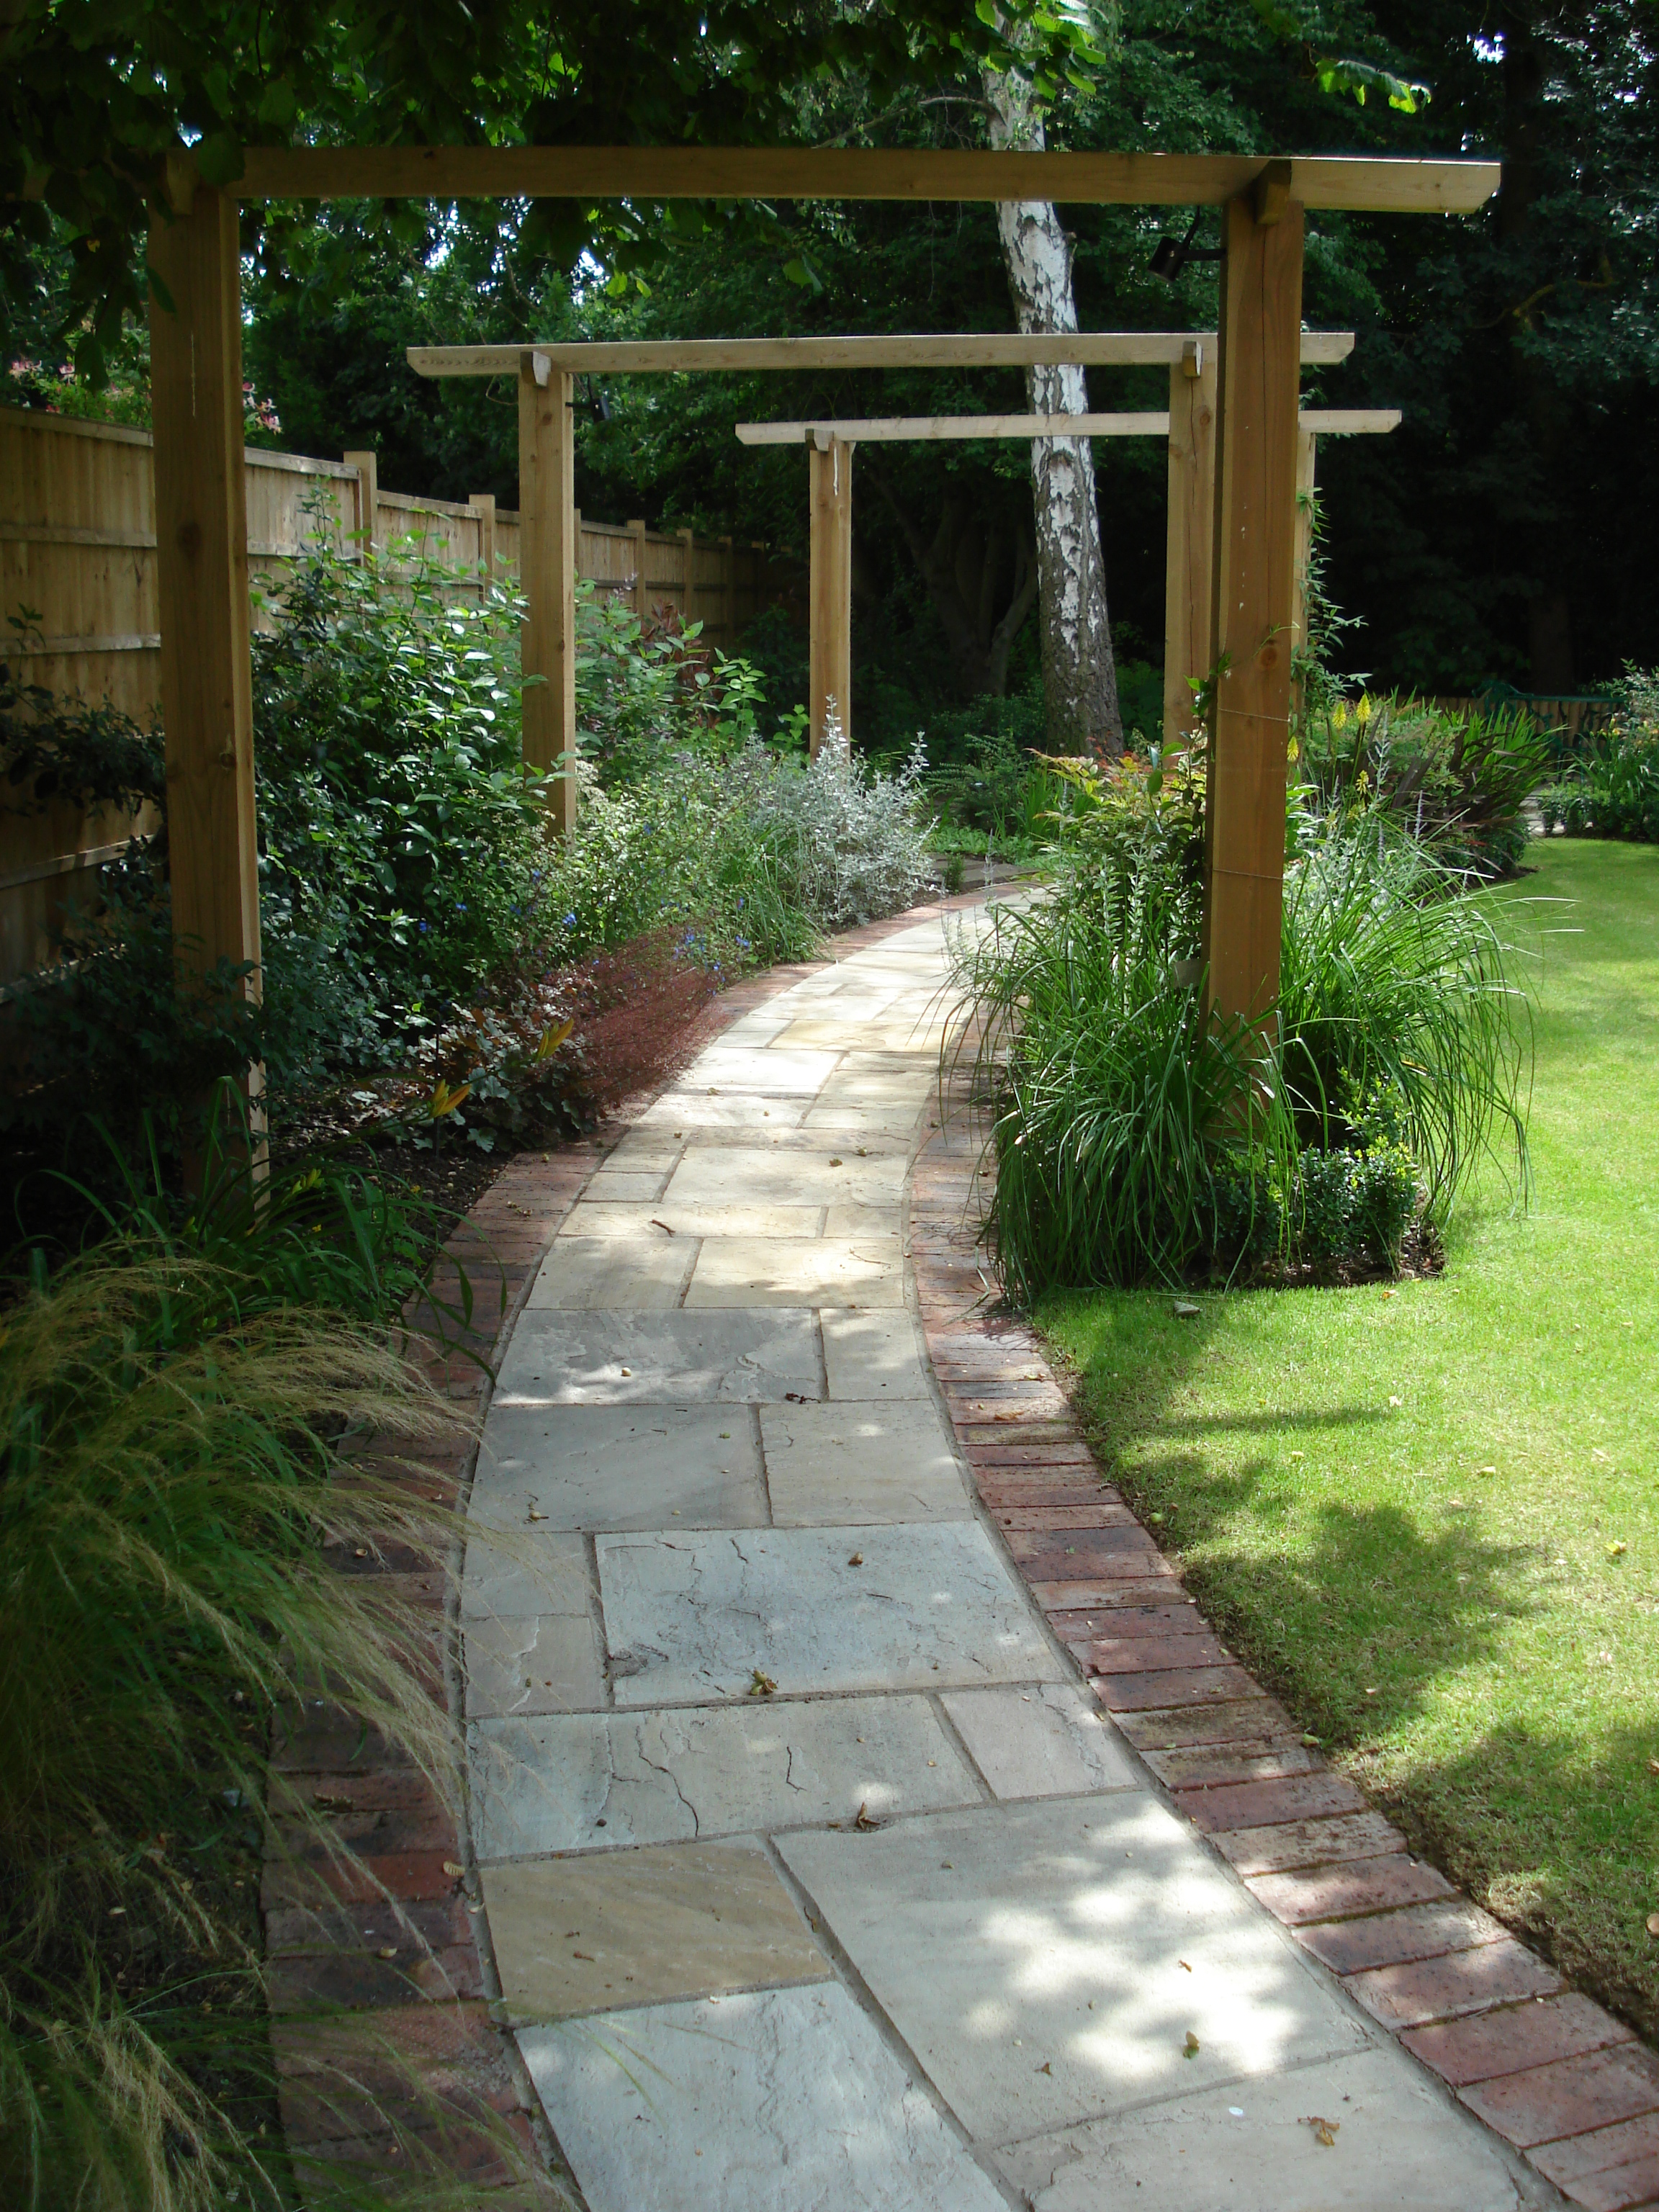 Rear Garden - Curved pathways of sandstone and brick edging lead the eye round the garden